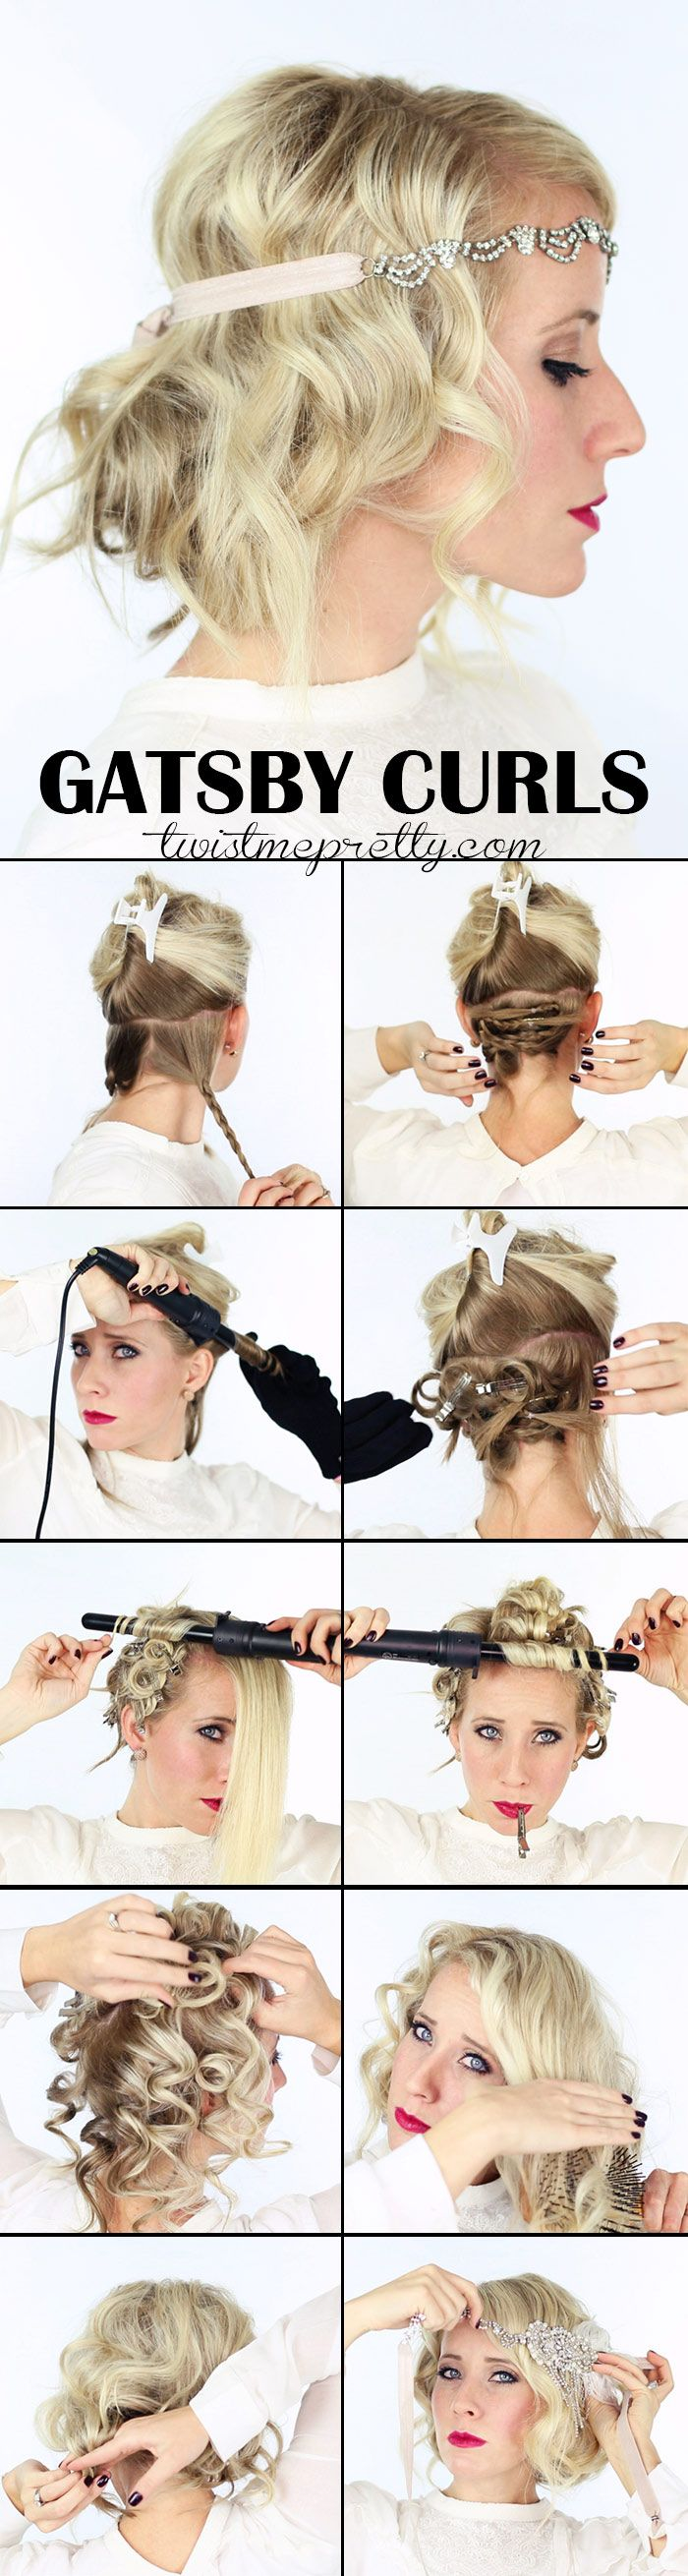 The perfect Gatsby Curls for your 1920 flapper girl costume!  Come checkout the vintage updo and watch the easy to follow video